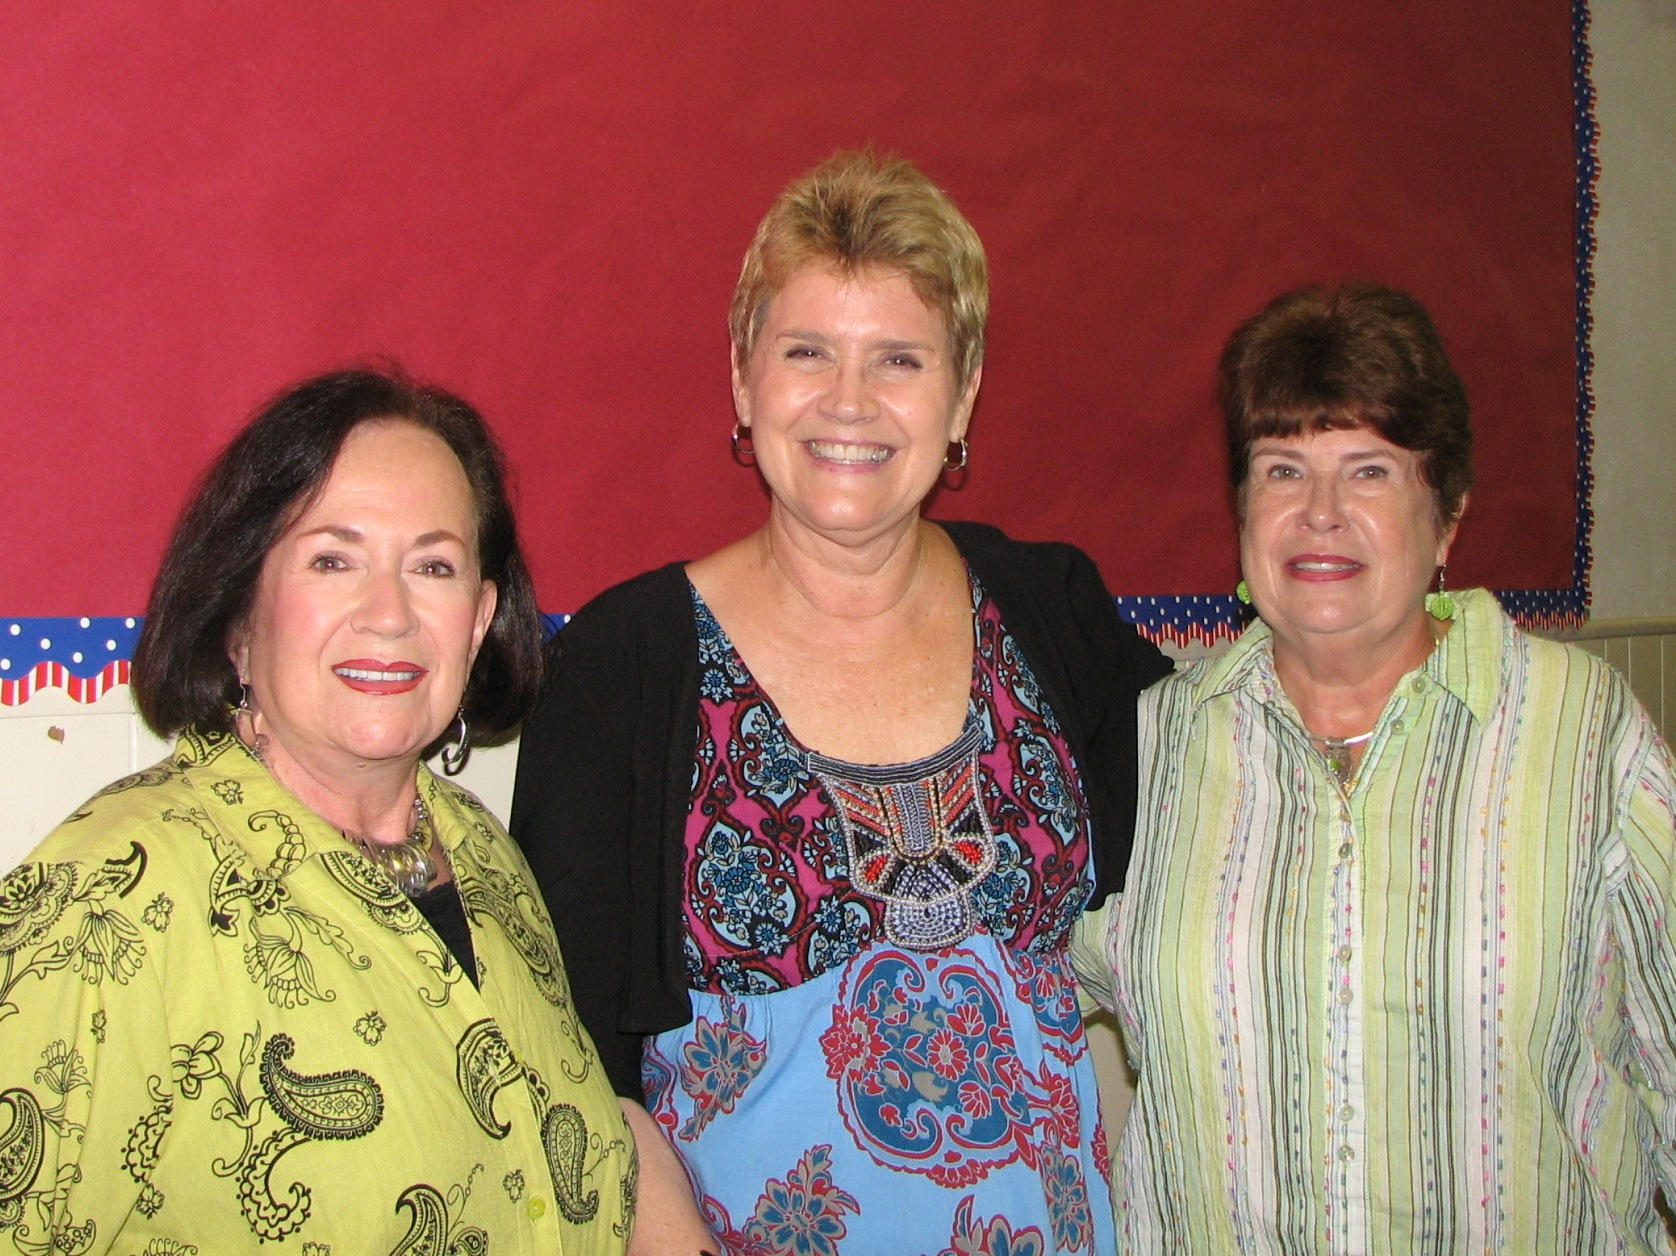 retiree-joy-cartwright-pms-2012-with-pef-reps-judy-mccormick-and-ginny-napier.jpg